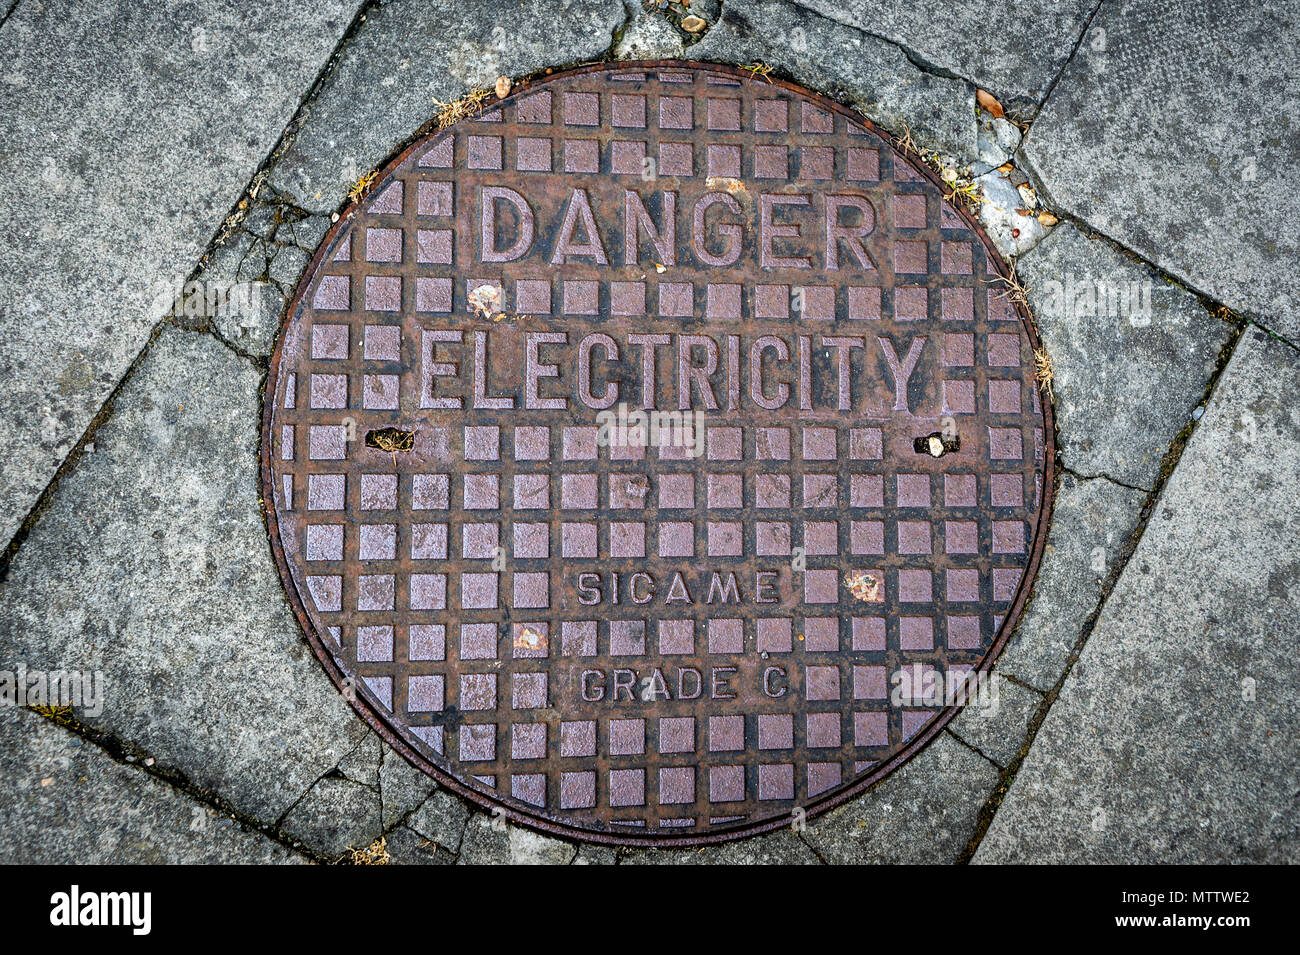 Danger electricity metal manhole cover - Stock Image